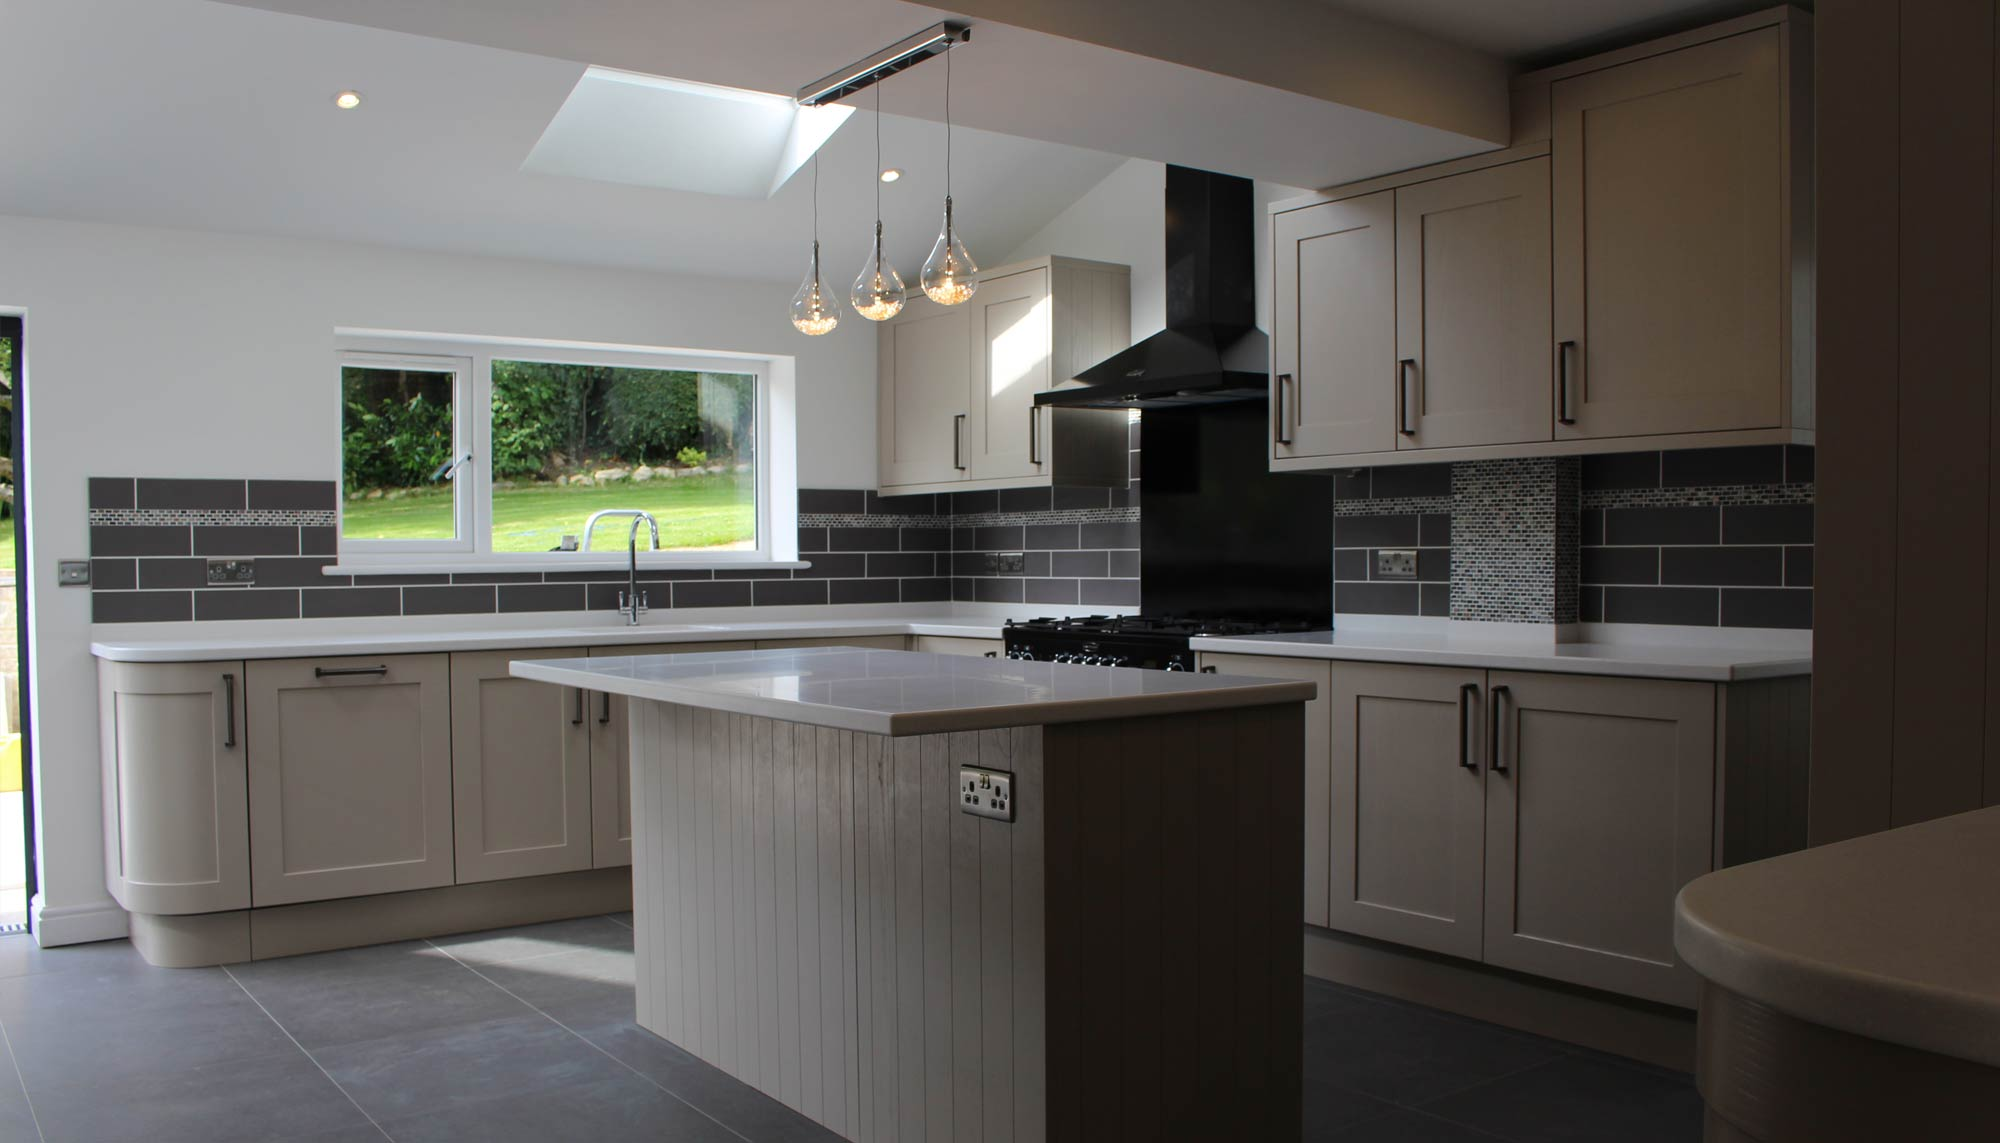 extention_kitchen_design_DG_1